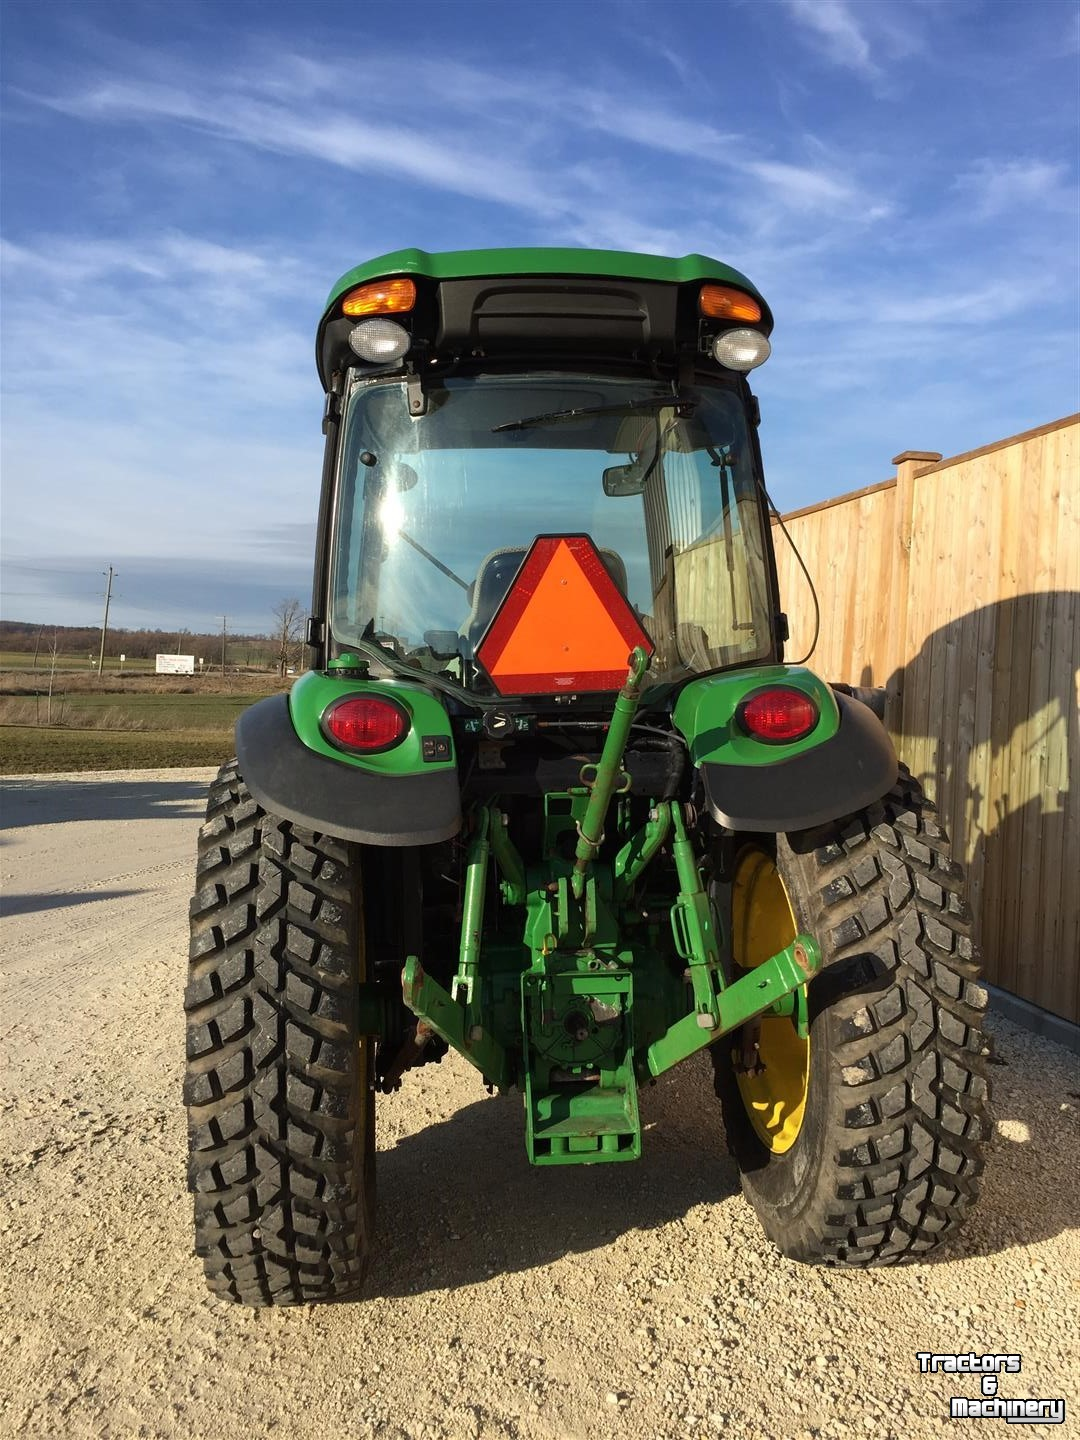 All Weather Tire >> John Deere 4066R 4WD HYDRO COMPACT TRACTOR ONTARIO - Used ...